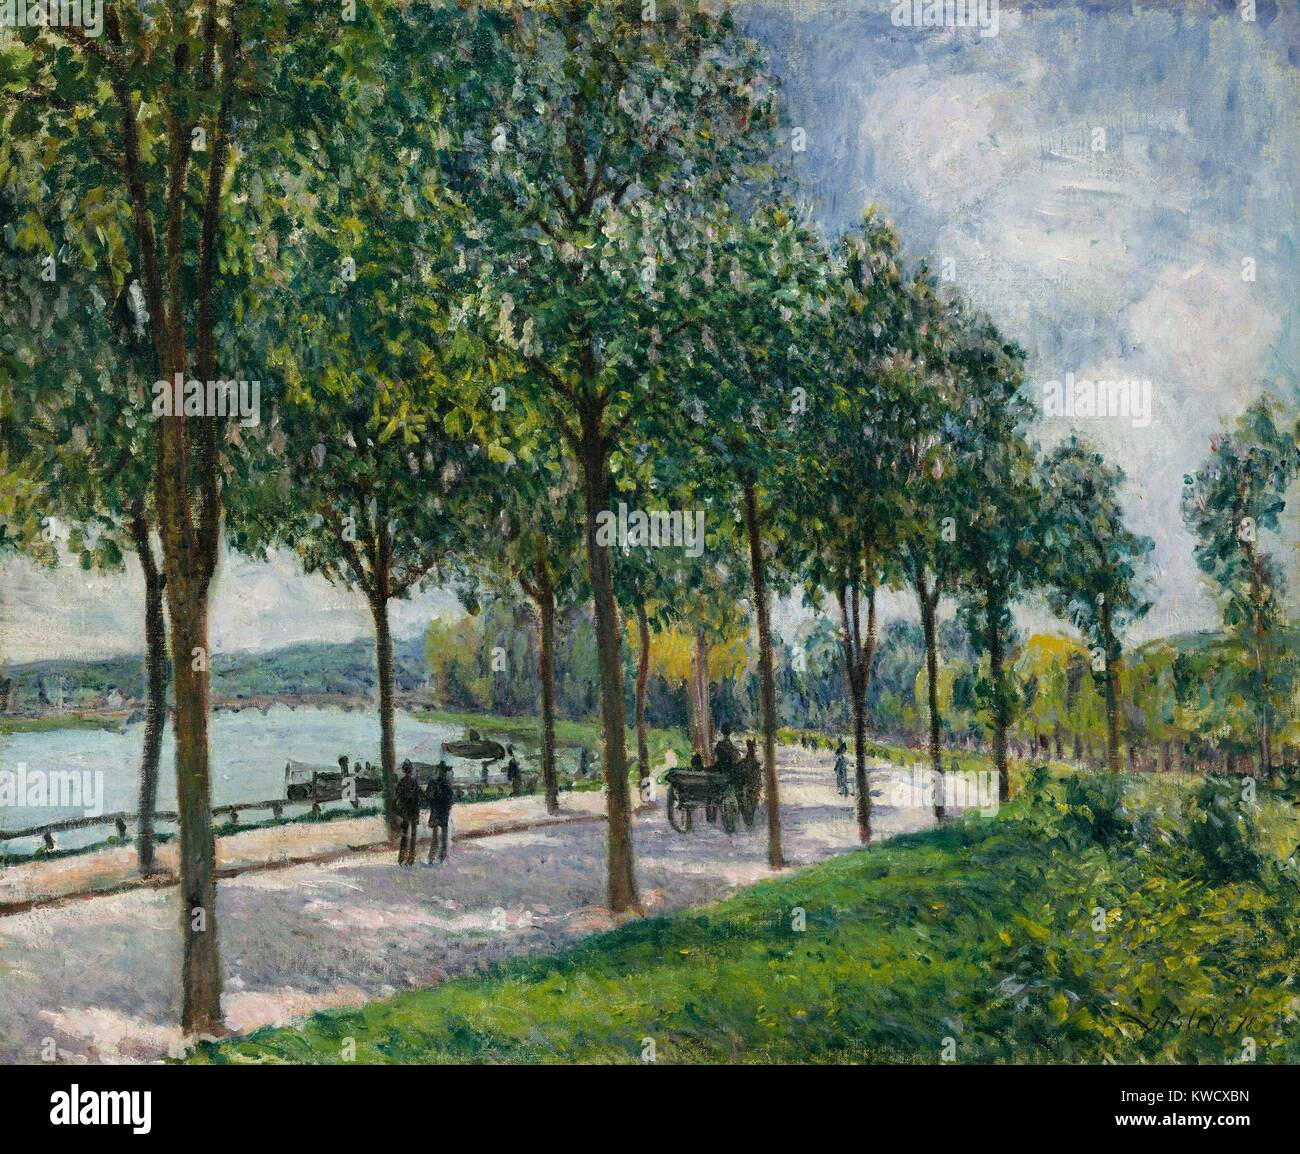 Alley of Chestnut Trees, by Alfred Sisley, 1878, French impressionist painting, oil on canvas. In Sevres, Sisley - Stock Image